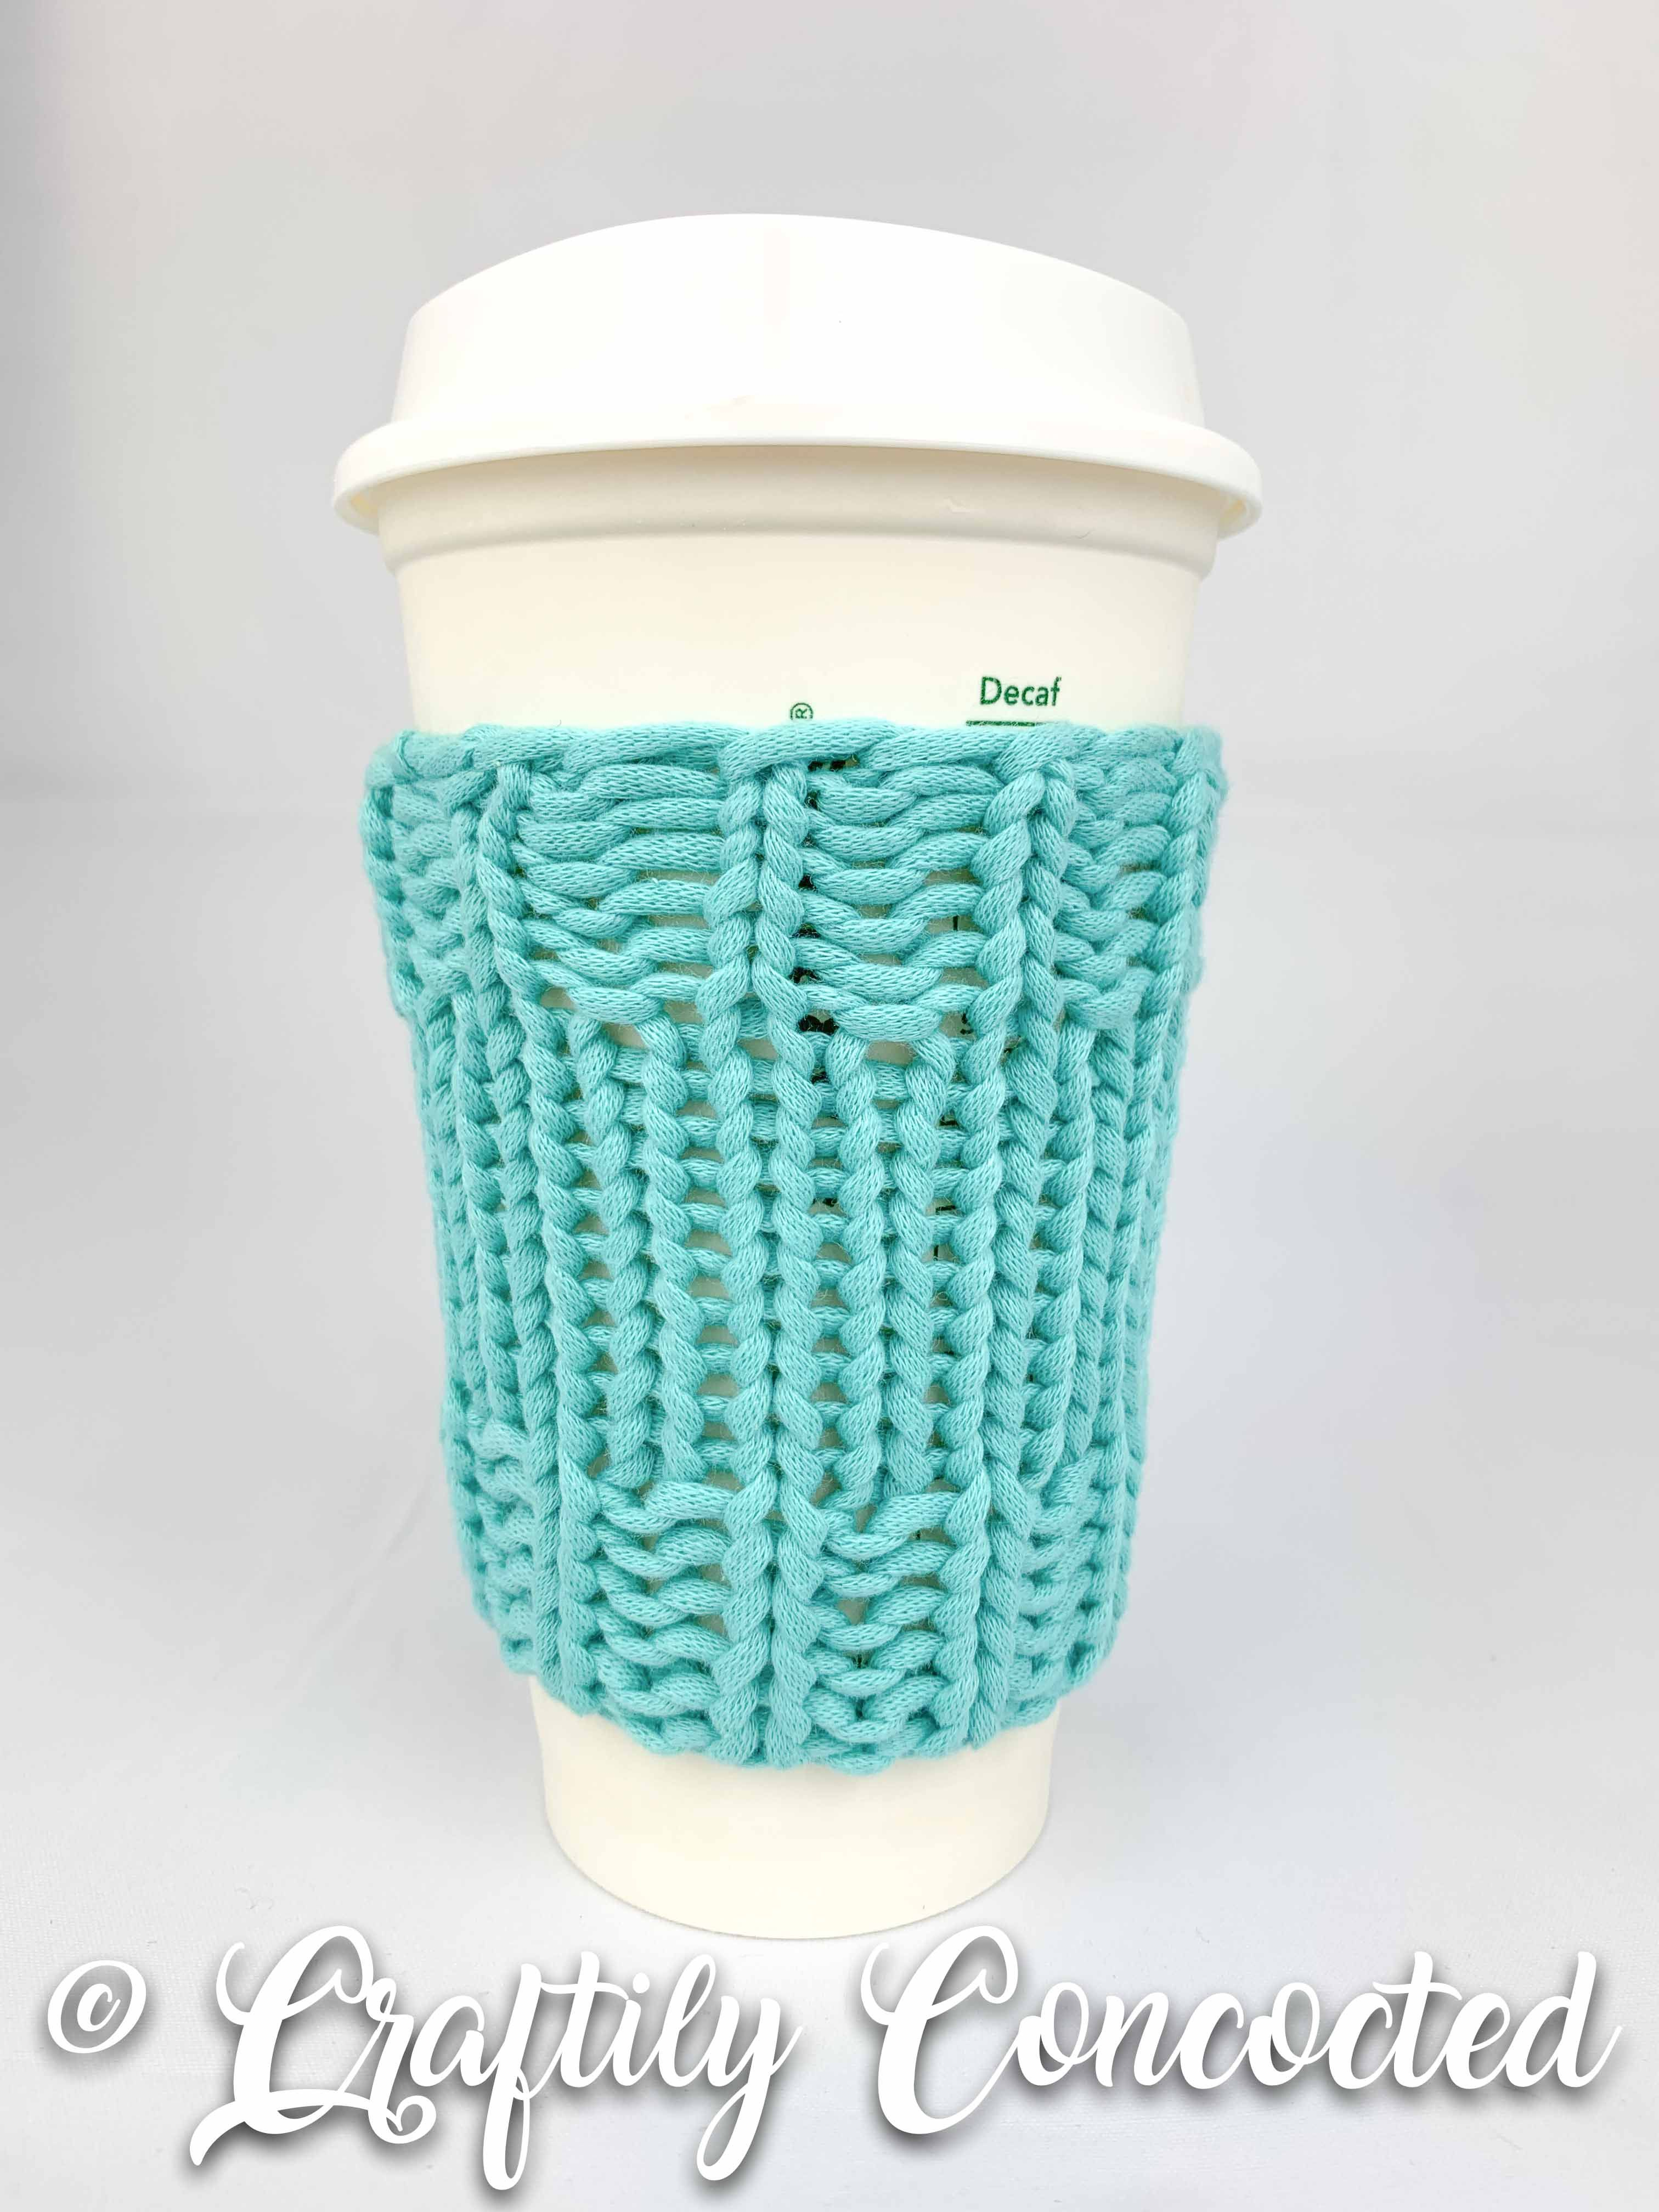 Keep your hands safe from hot Starbucks coffee with this knitted coffee cup cozy.  This coffee cup sleeve fits most sizes of travel cups. #coffeeloversunite #coffeefirst #coffee #musthavecoffee #coffeecupcozy #travelmug #havecoffeewilltravel #starbucks #coffeecup #cupcozy